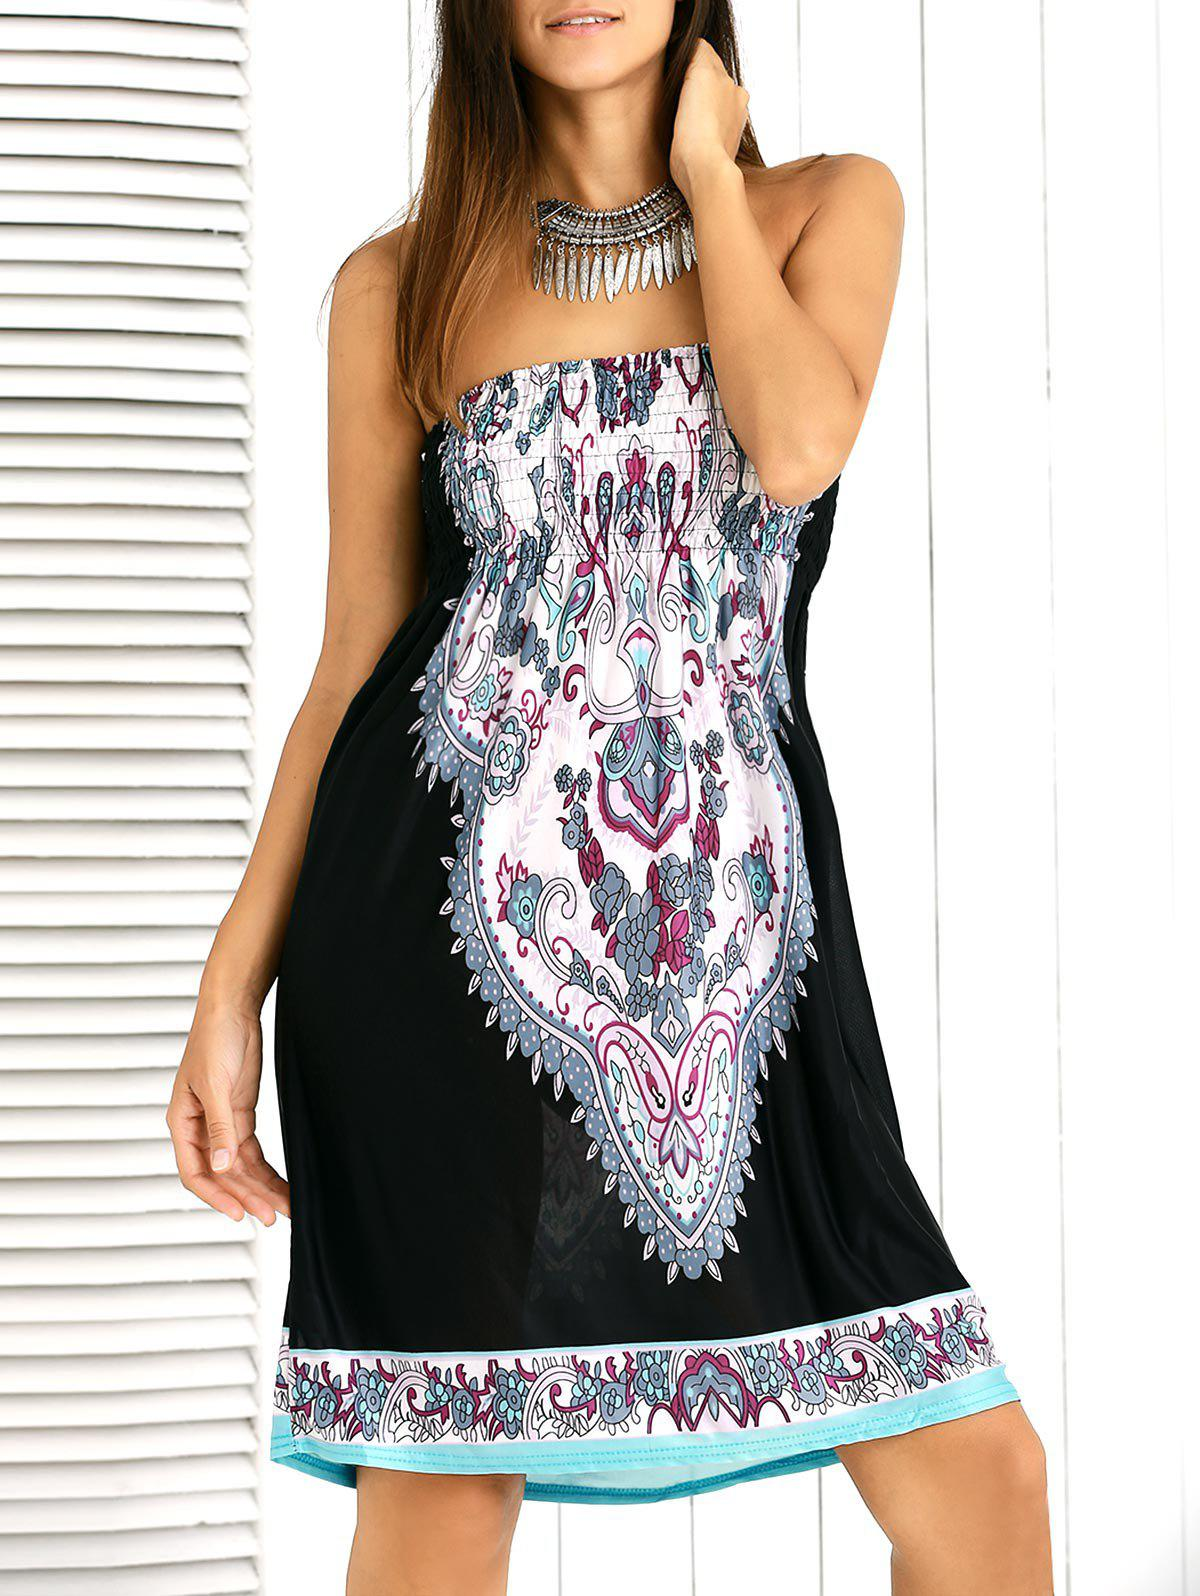 Alluring Paisley Ornate Printed Shirred Tube Dress For Women